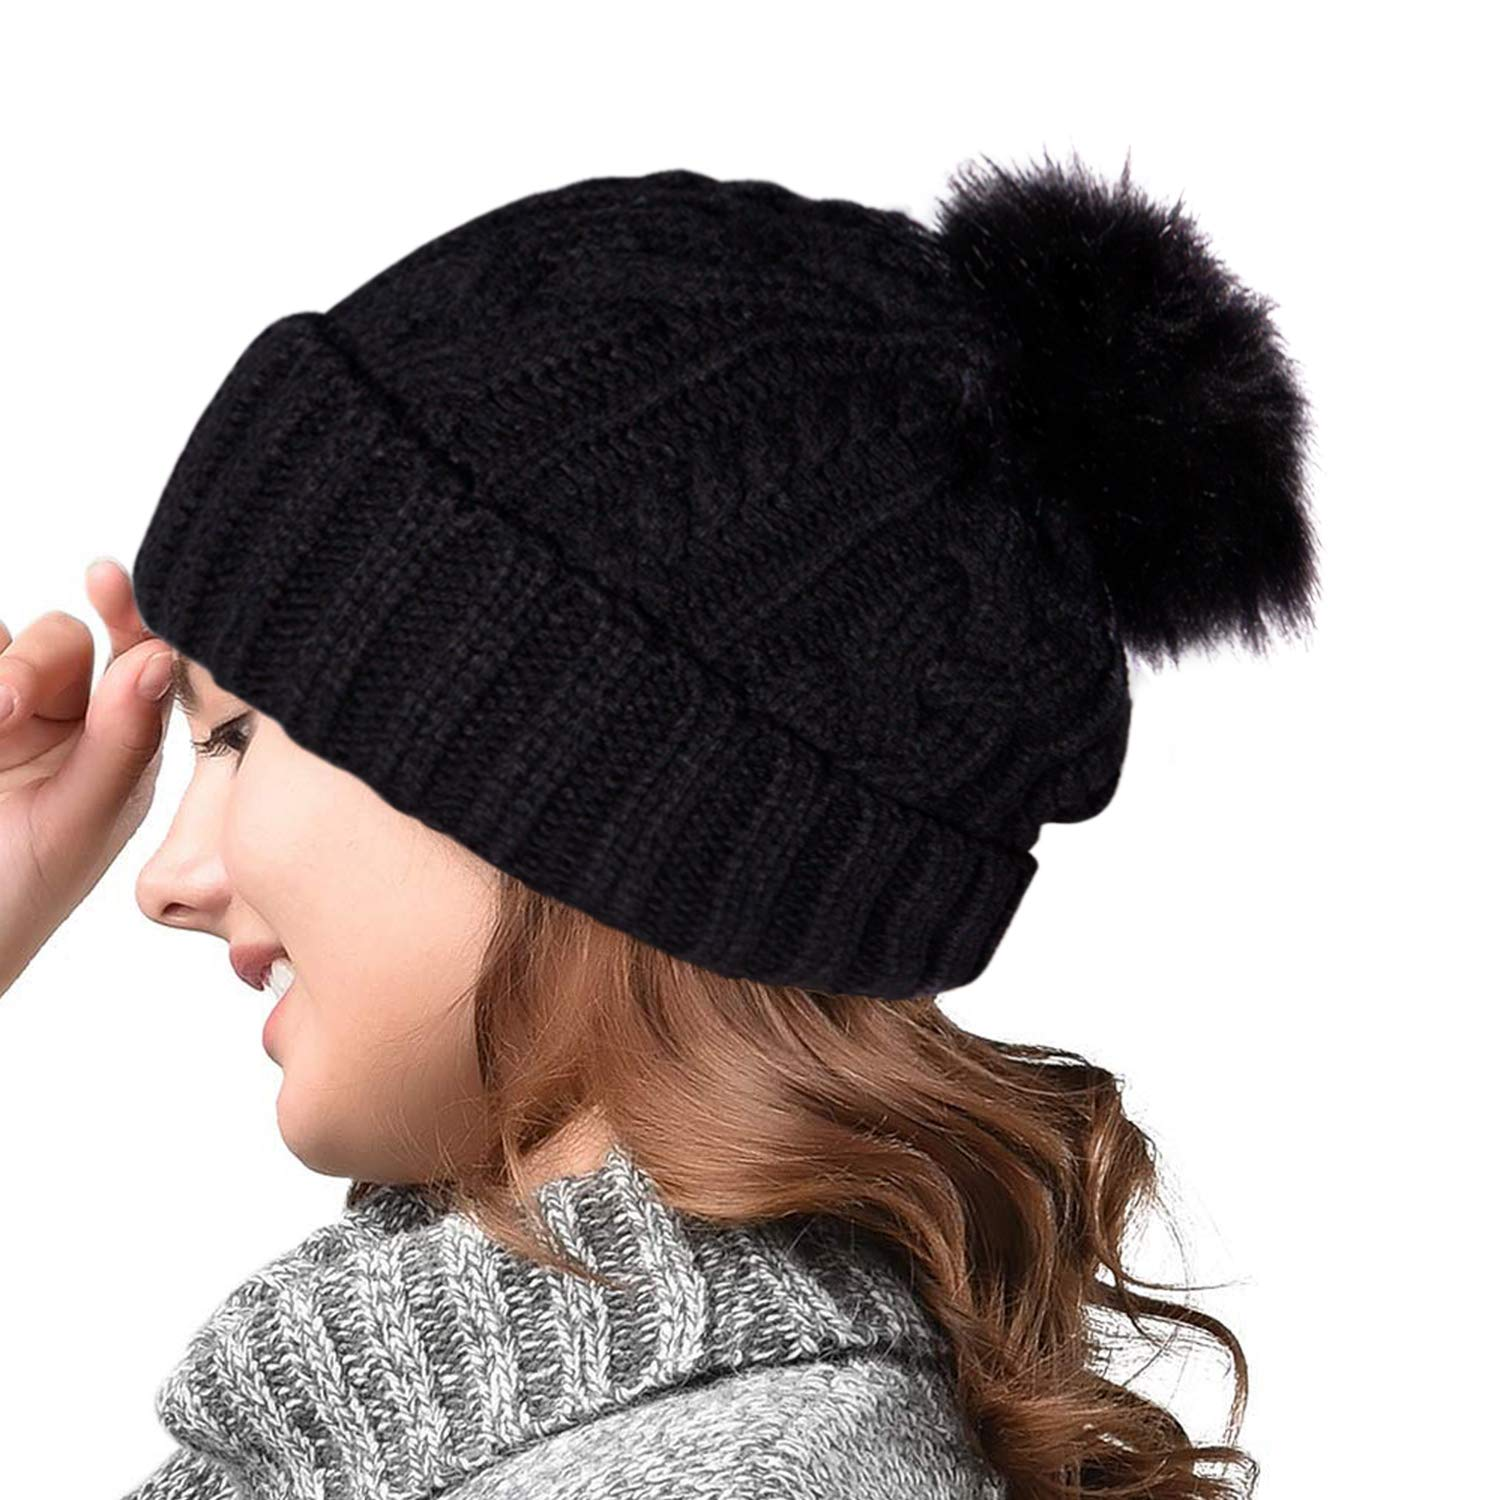 YSense Beanie Hat Black and White 2 Pack Women Winter Knitted Double Layer Lovely Bobble Hats with Faux Pompom